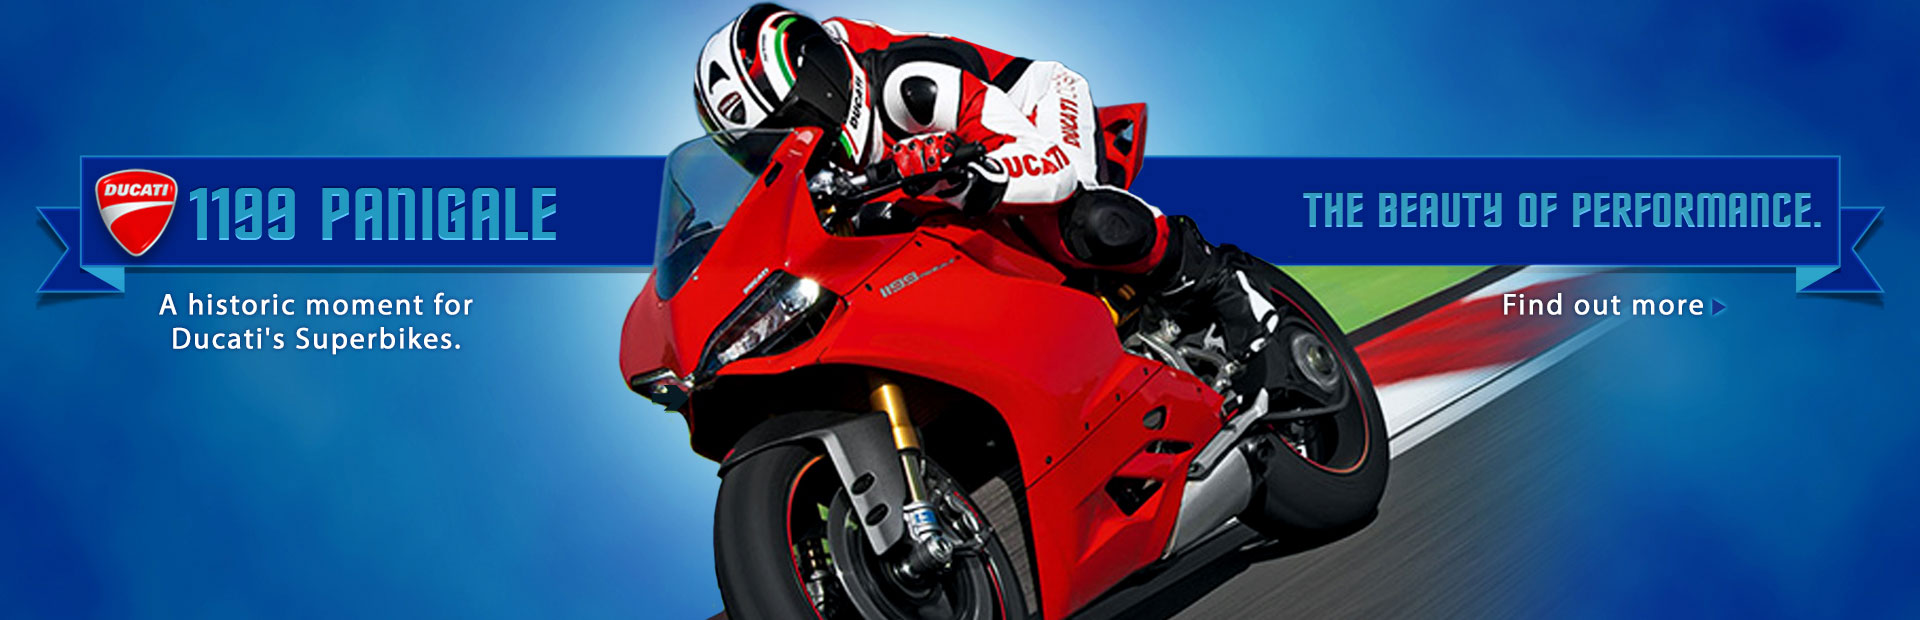 Click here to view the Ducati 1199 Panigale Superbikes.